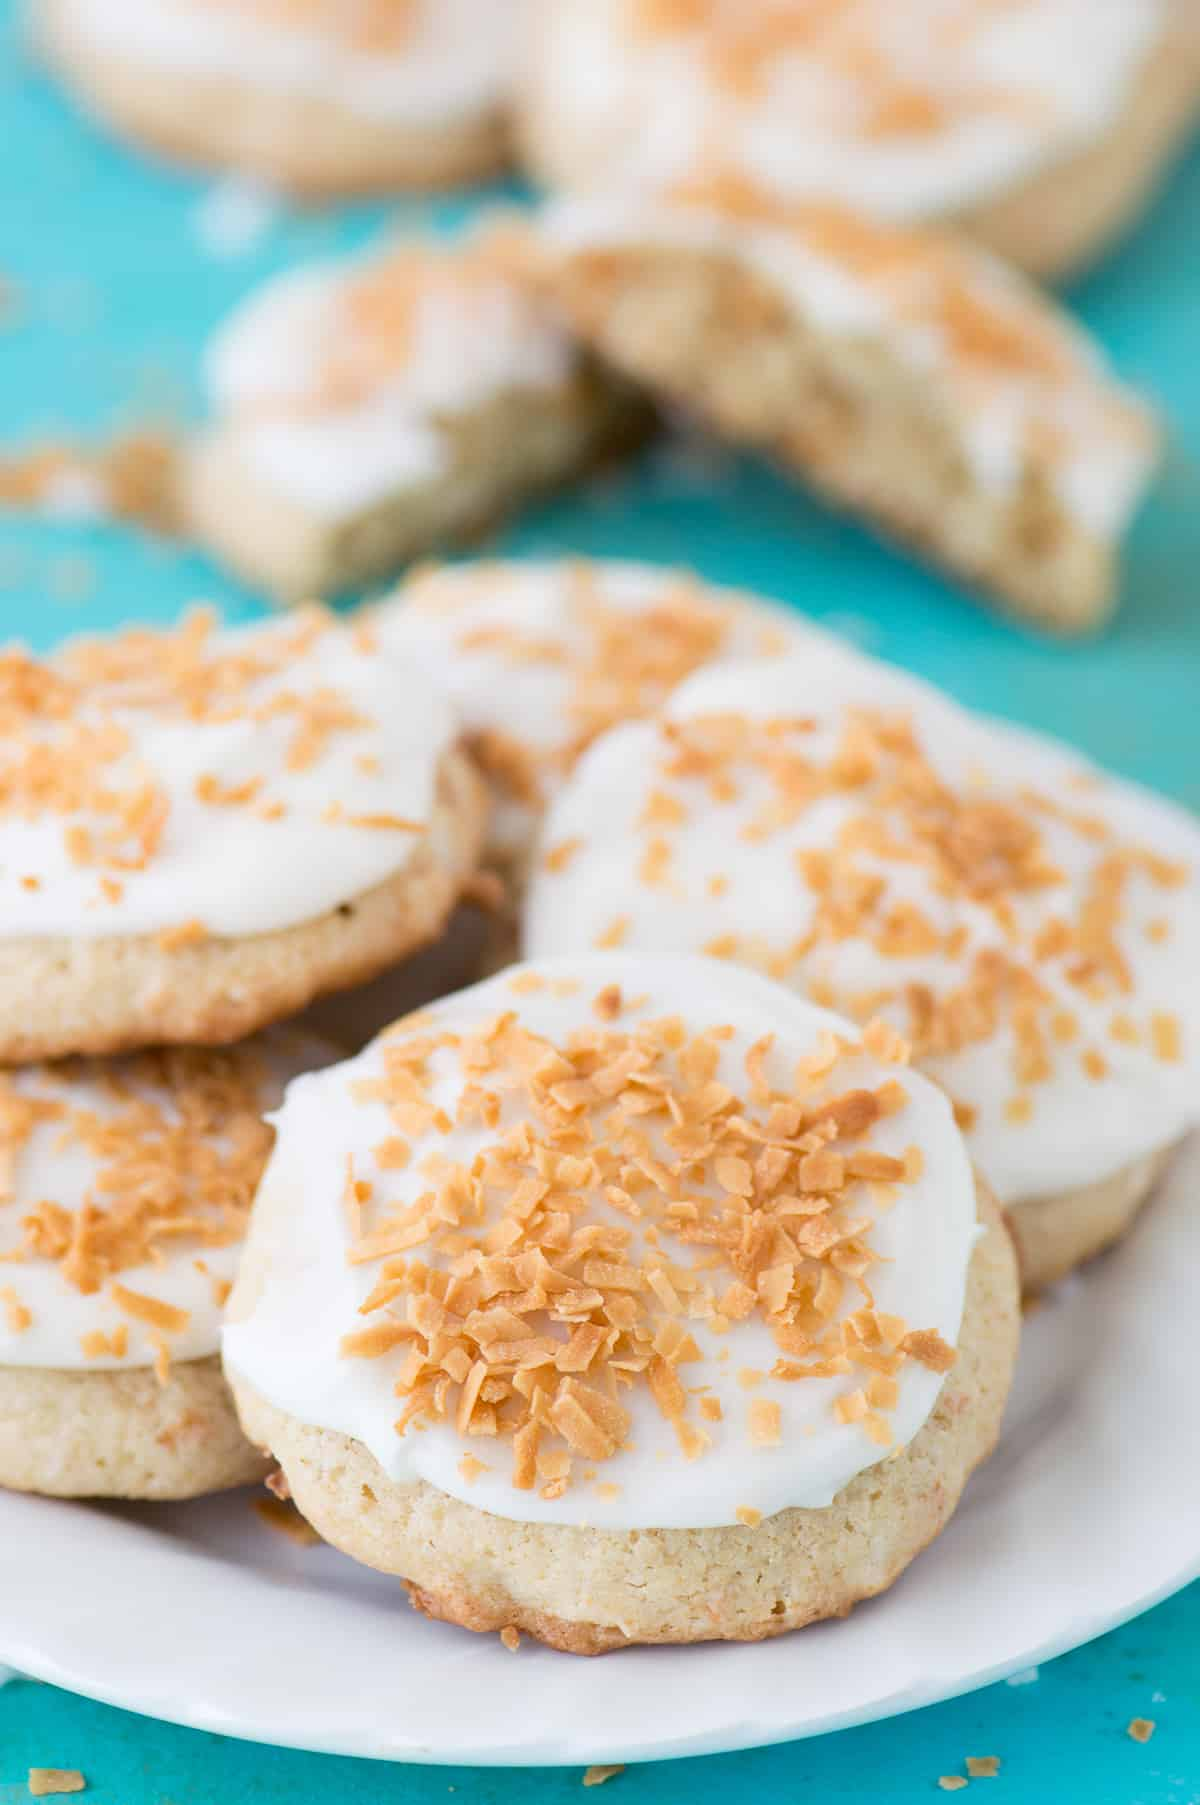 coconut cookies with white frosting on white plate on teal background